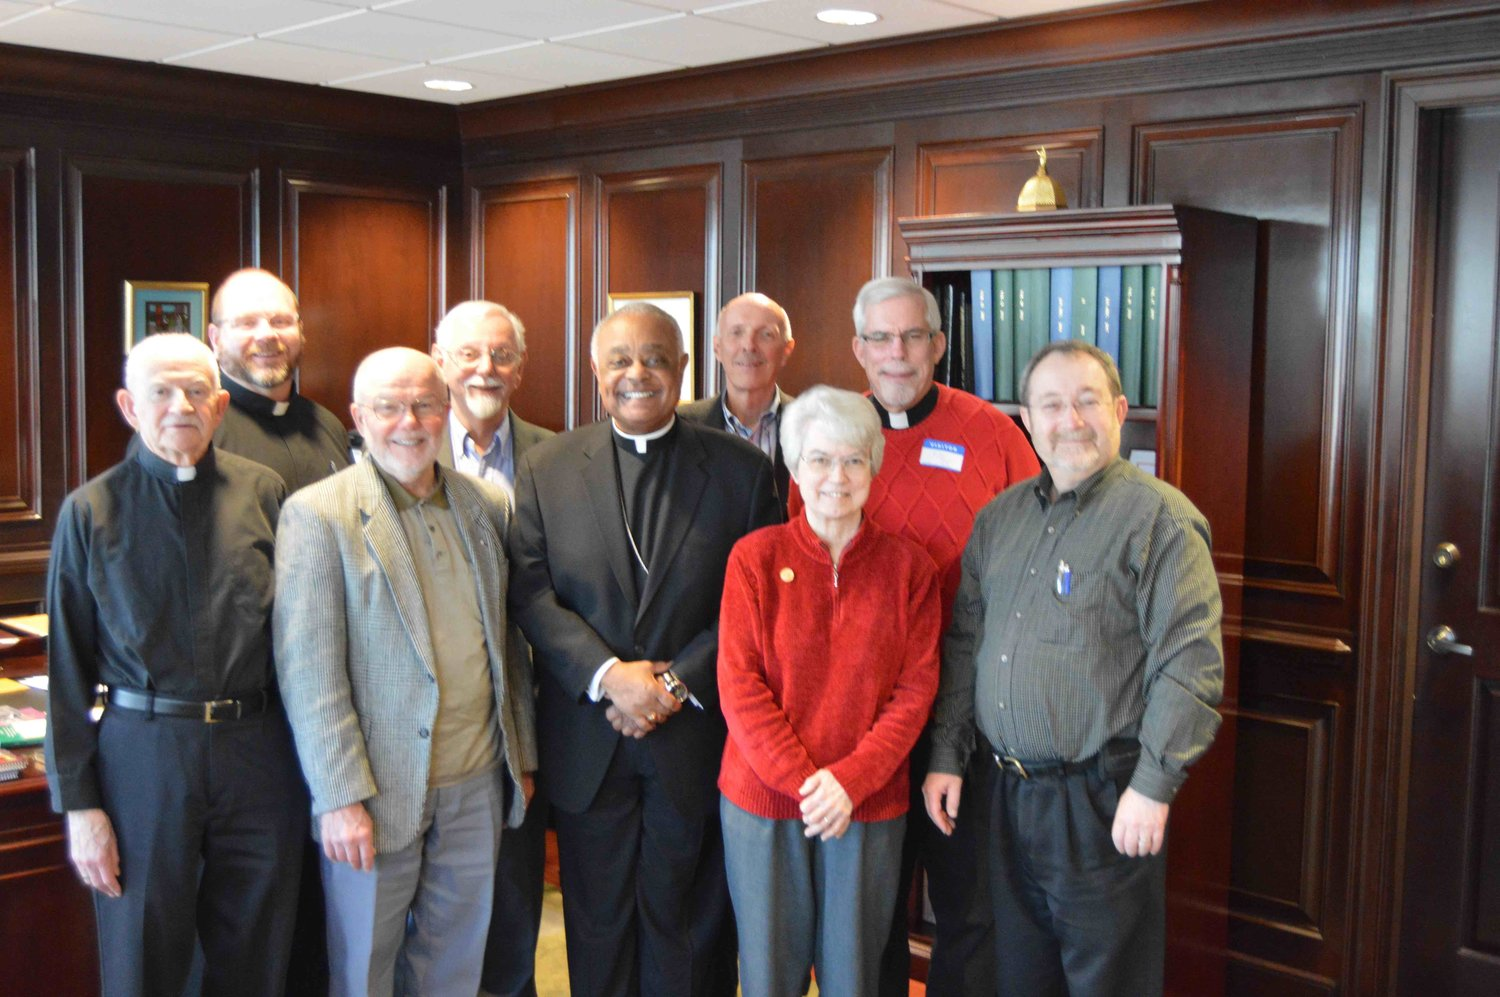 Atlanta Archbishop Wilton Gregory welcomes Assembly planners in January 2017.